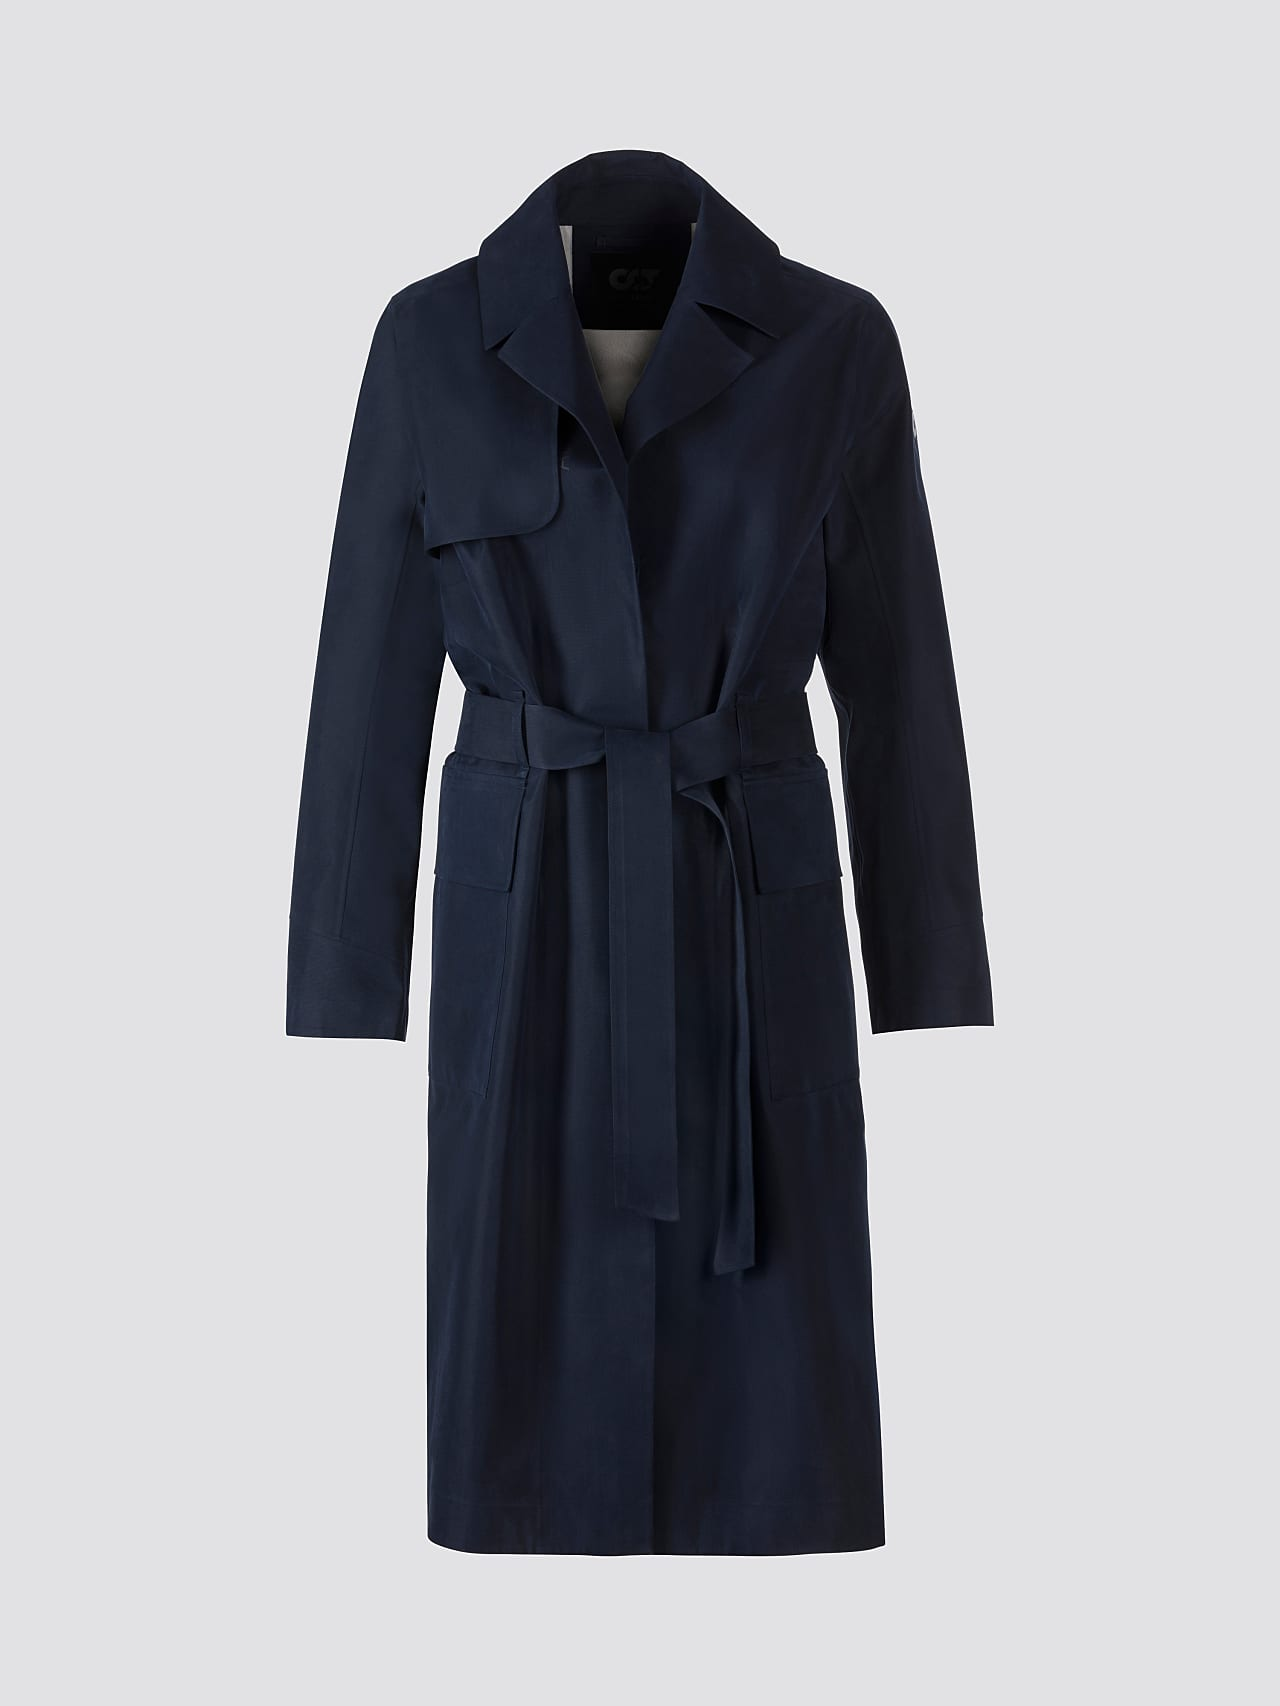 OZENZ V1.Y5.01 Packable Waterproof Trench navy Back Alpha Tauri